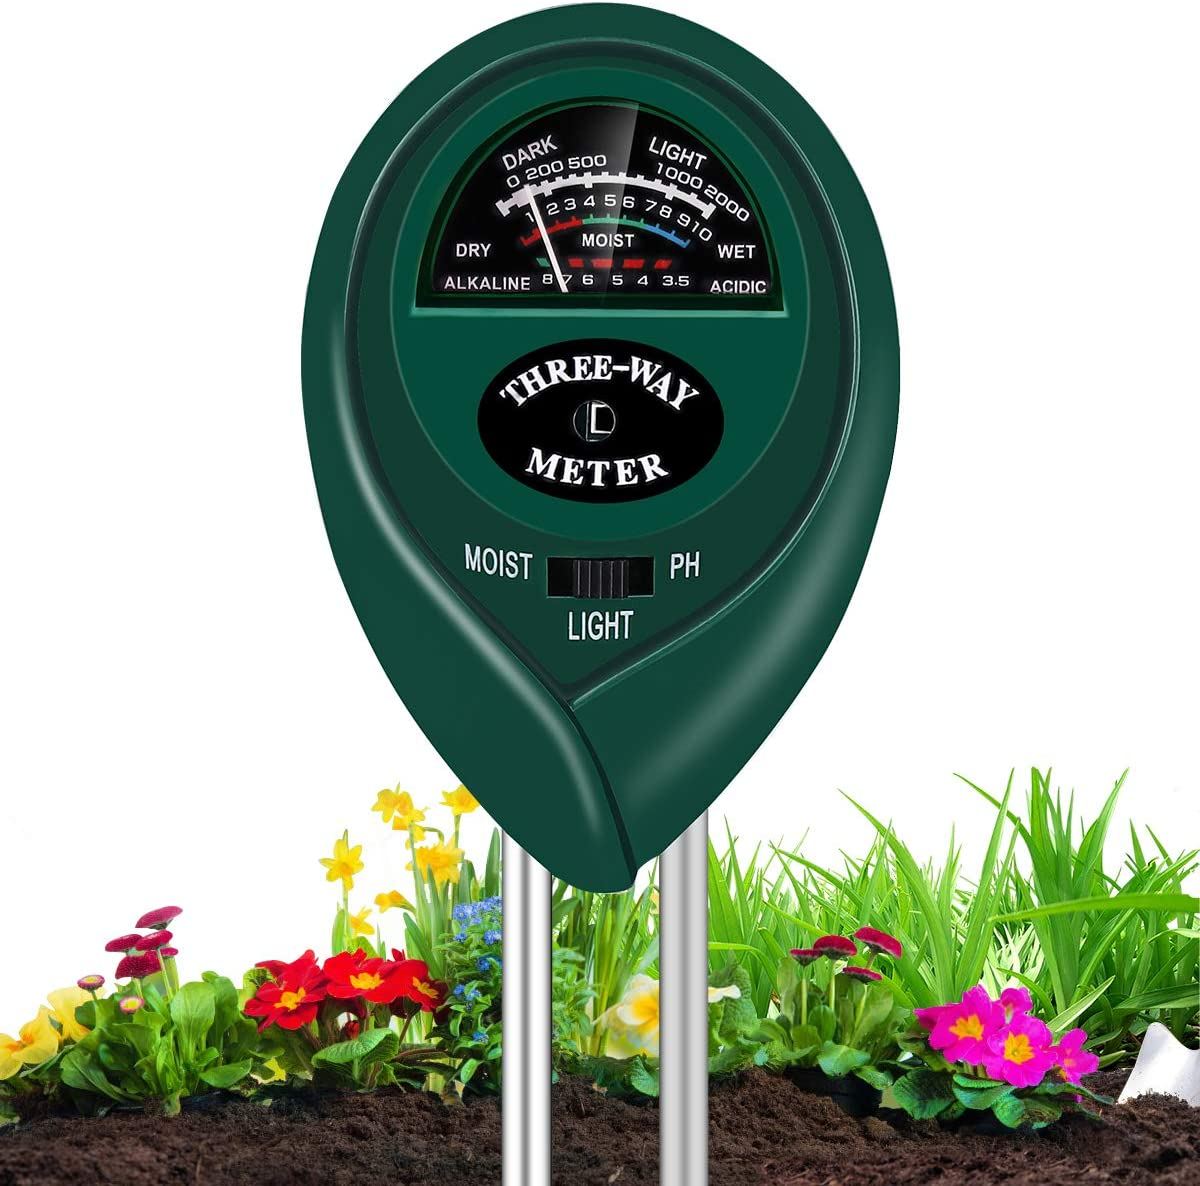 Soil Moisture Meter, 3 in 1 Soil pH Tester & Light Monitor Kits for Garden, Lawn, Indoor & Outdoor Plant Care, No Battery Needed, Green